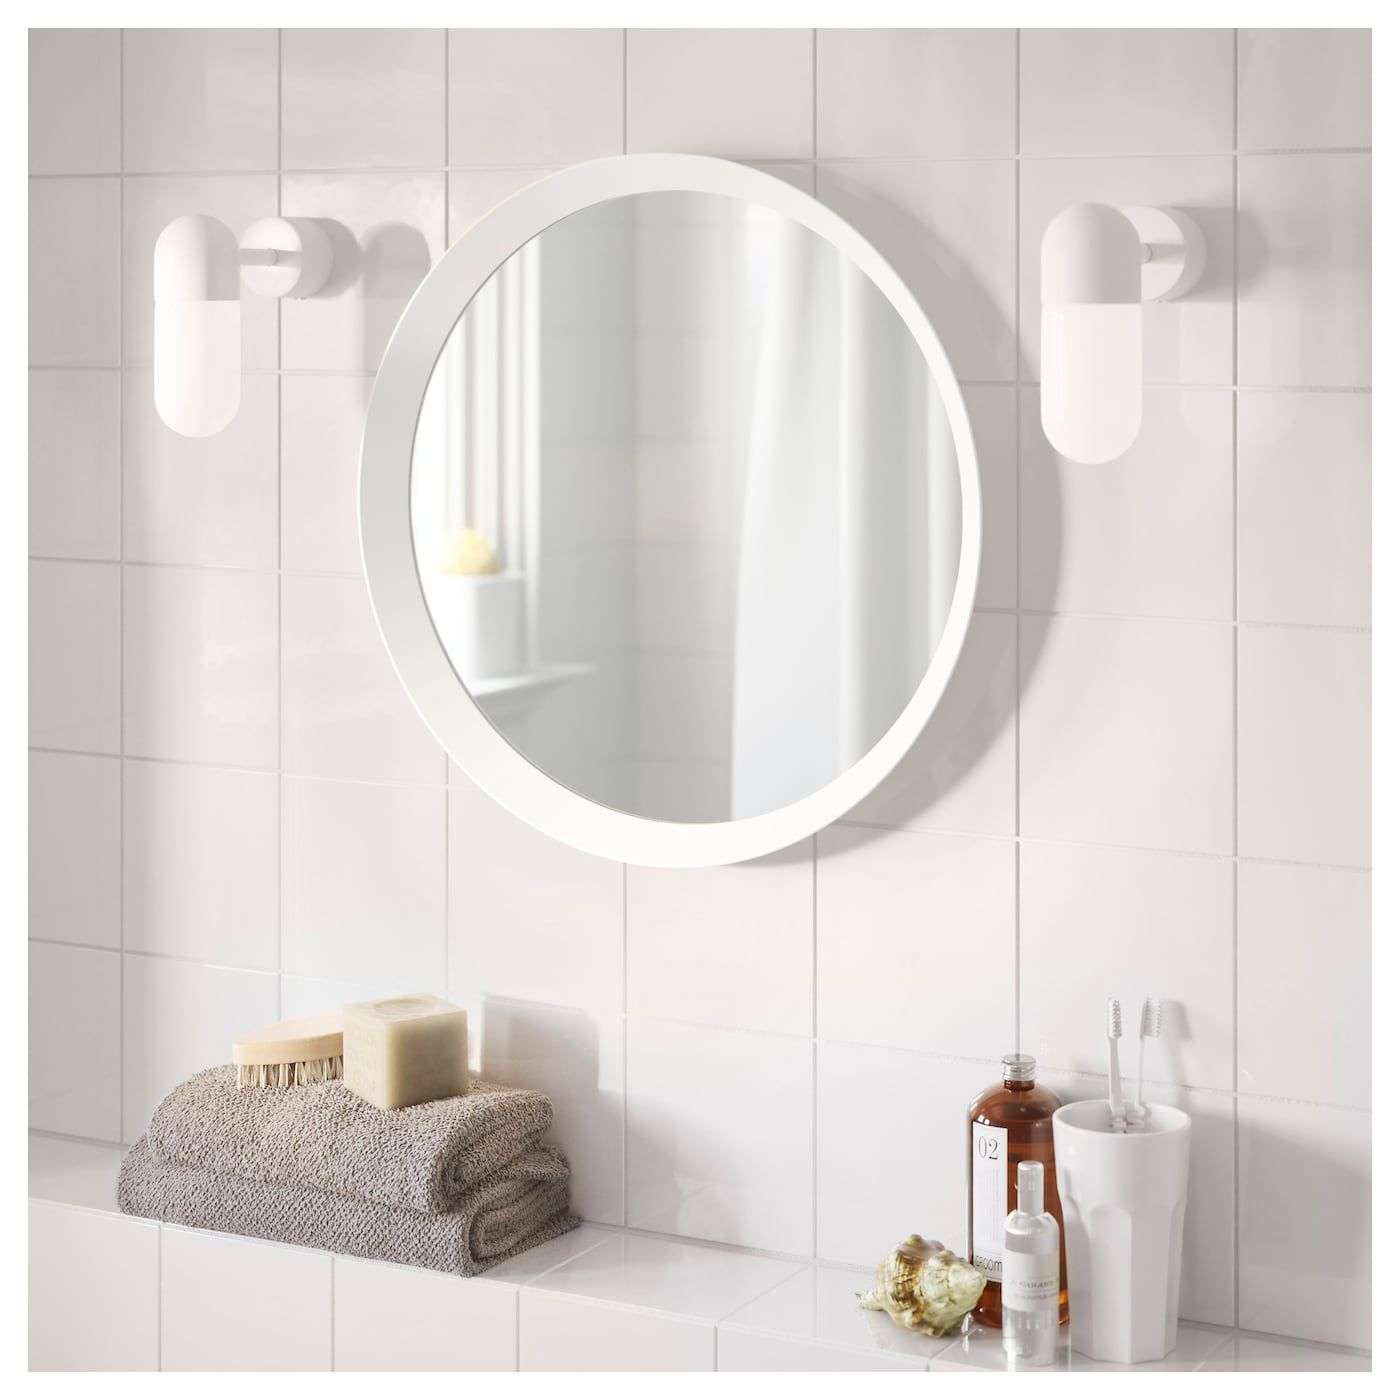 IKEA US - Furniture and Home Furnishings  Round mirror bathroom